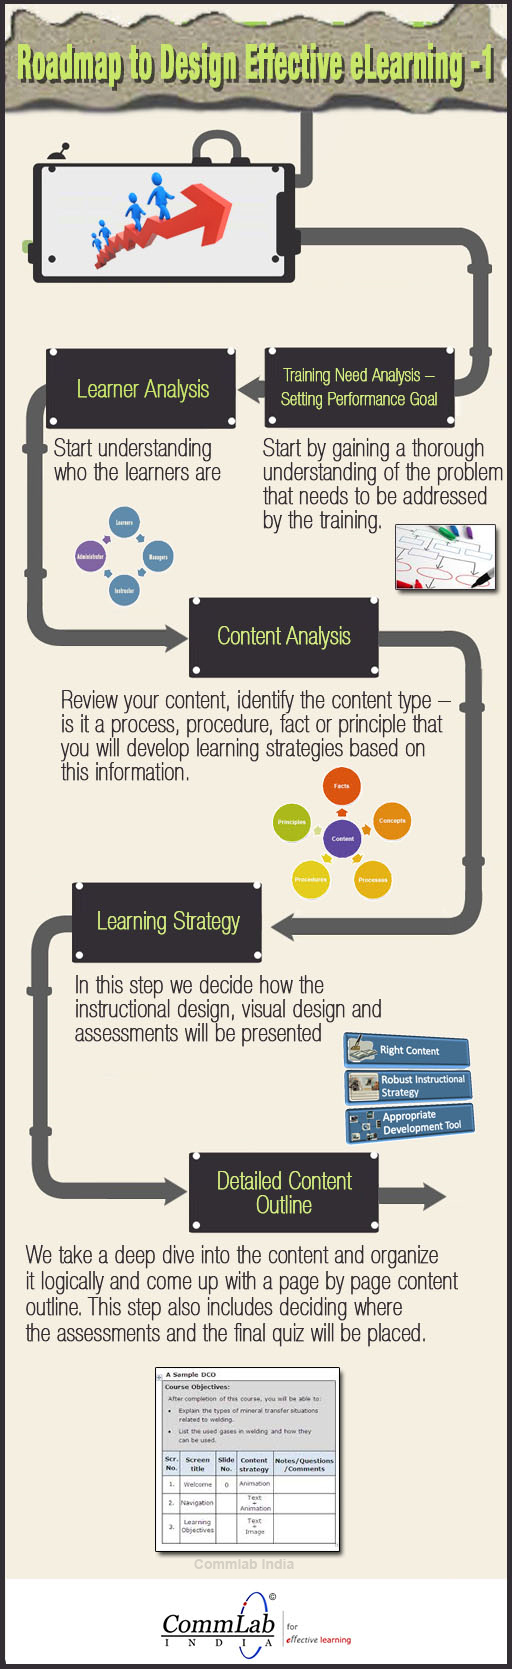 Roadmap To Design Effective eLearning Part1 – An Infographic